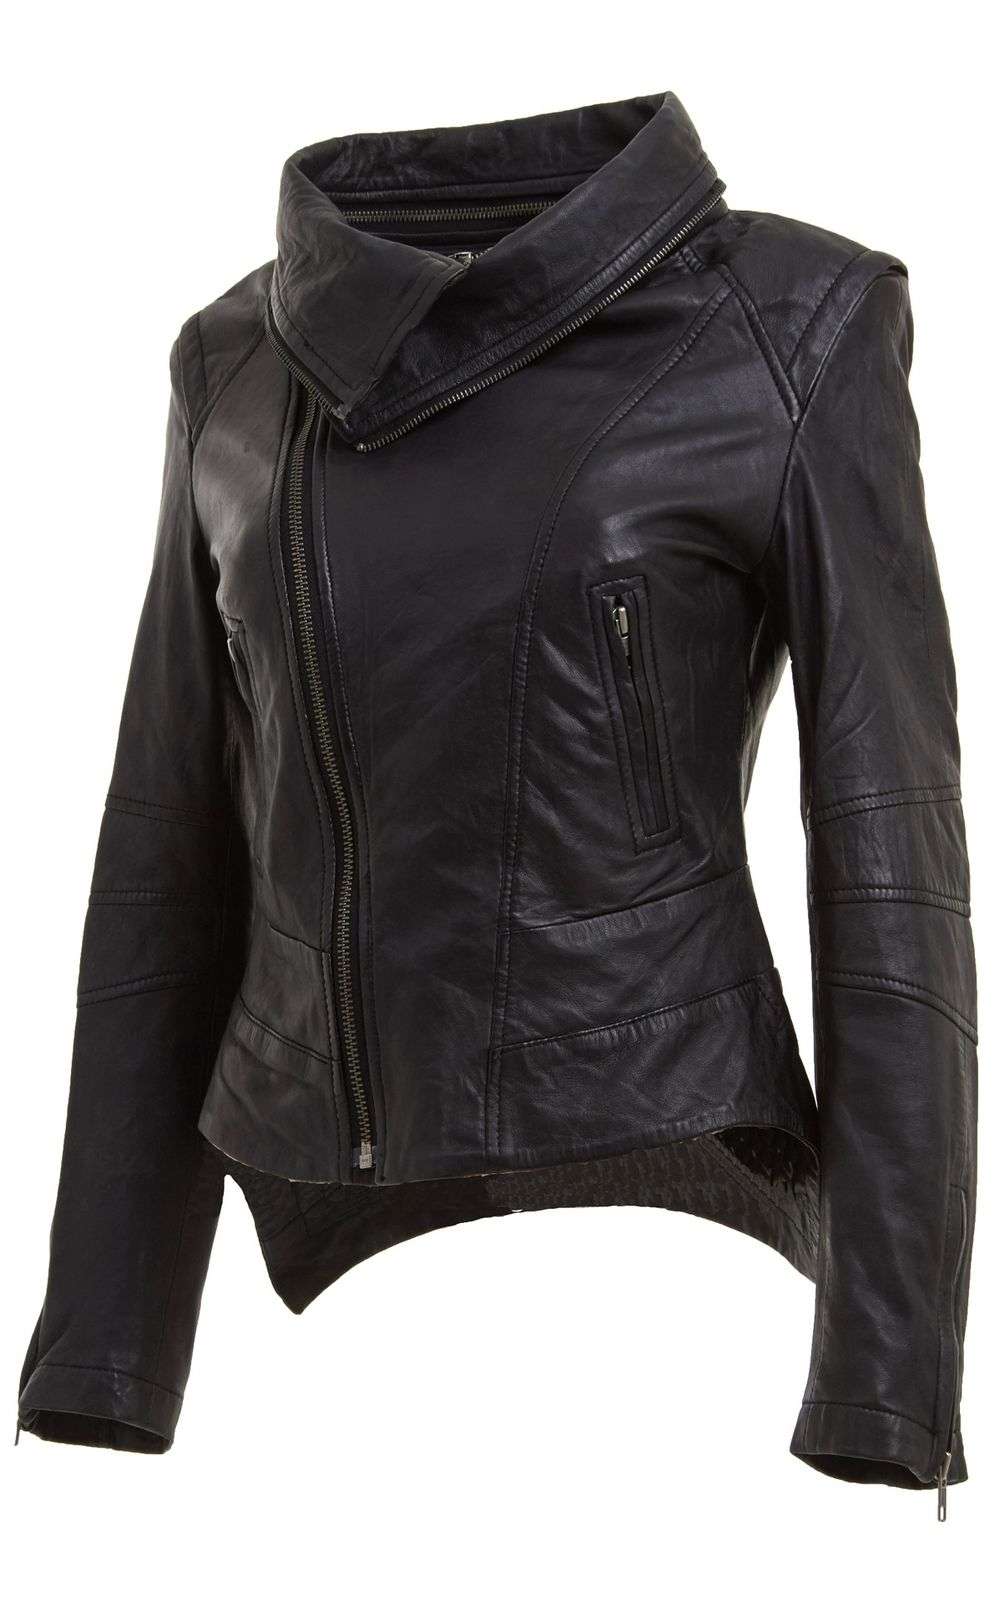 17 Best images about women leather jacket on Pinterest | Women's ...